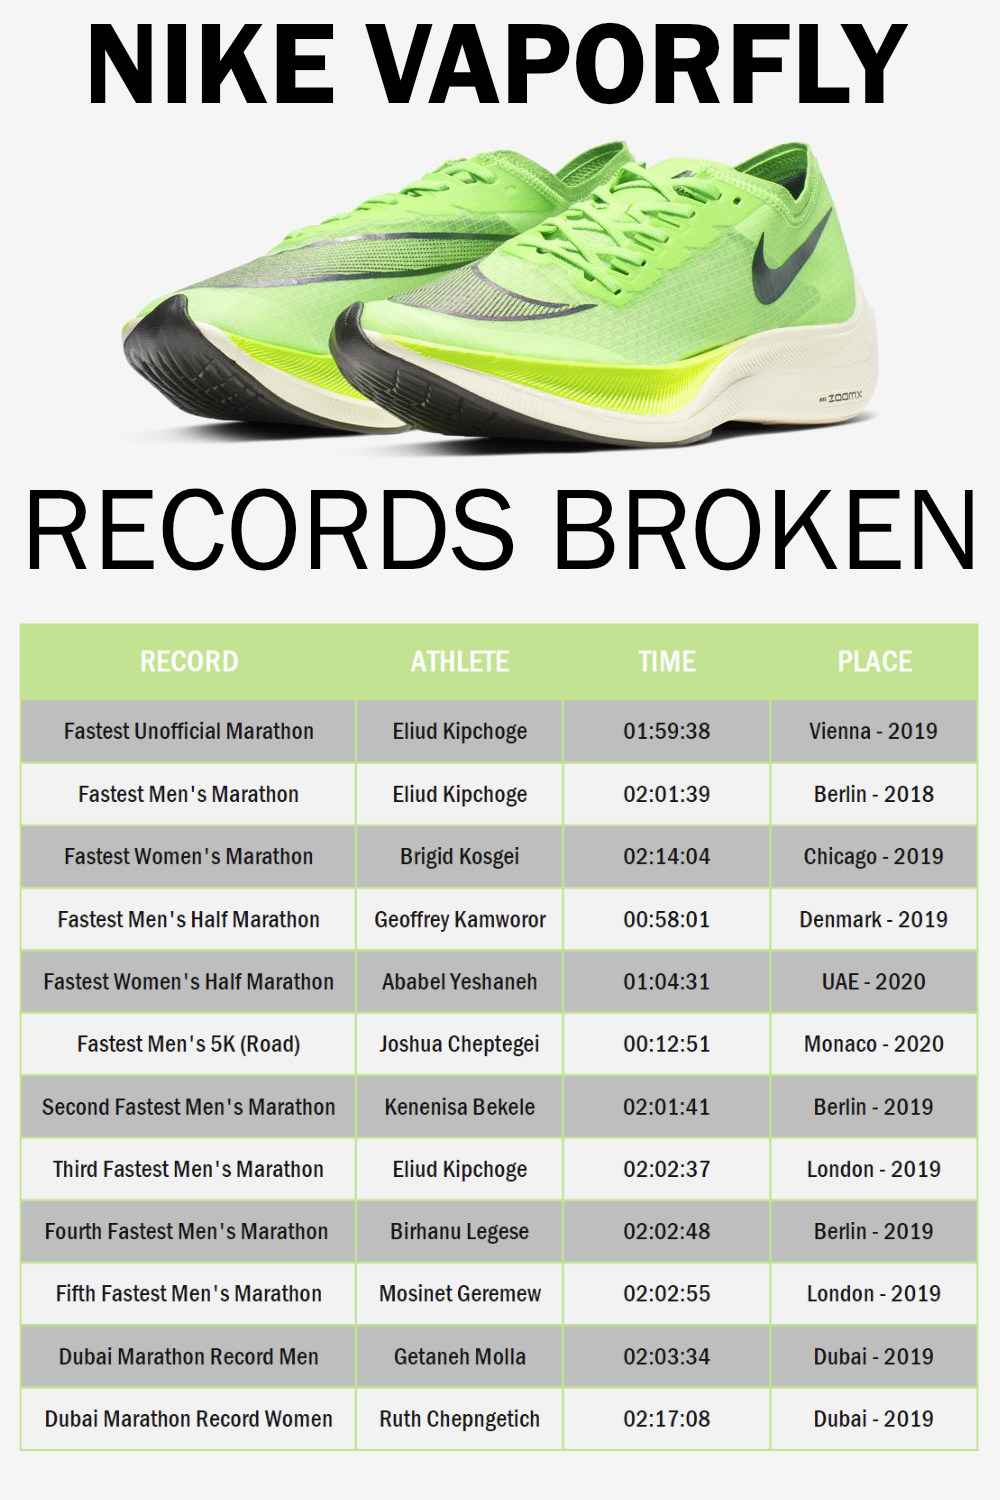 Nike Vaporfly Records Broken – Full List